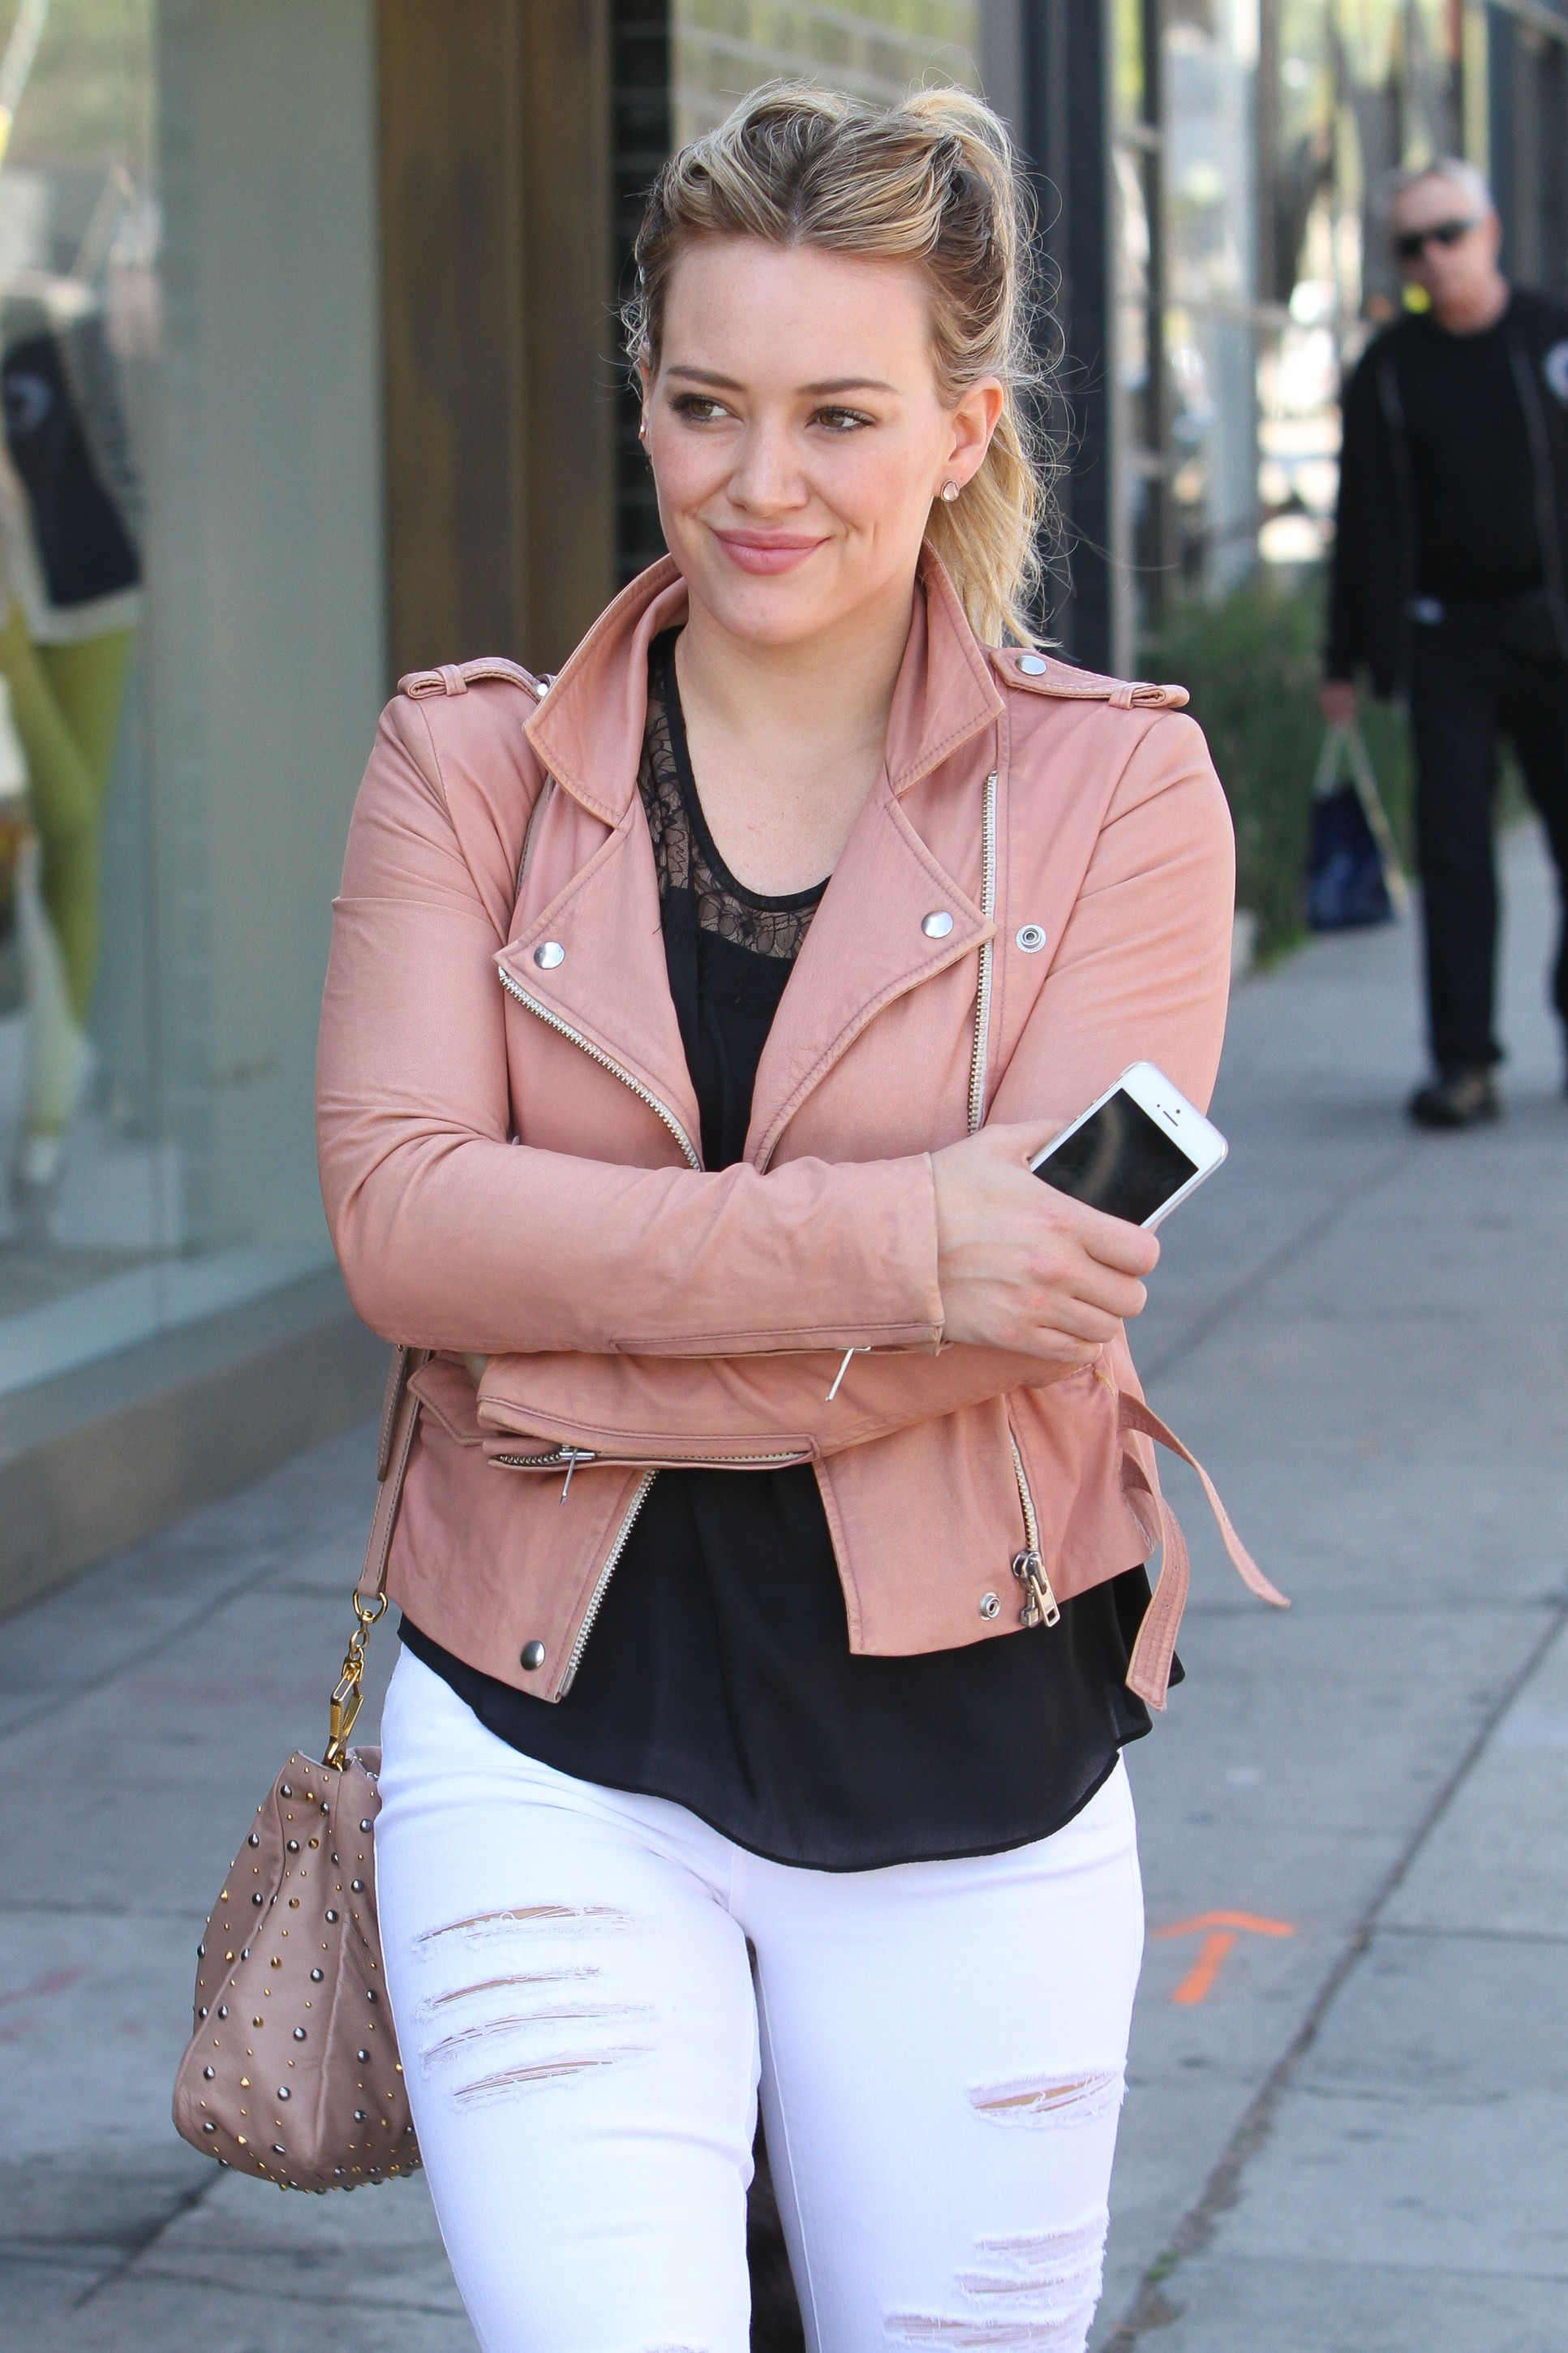 Hilary Duff: Pink Leather + A Raccoon Tail — Check Out All ... хилари дафф